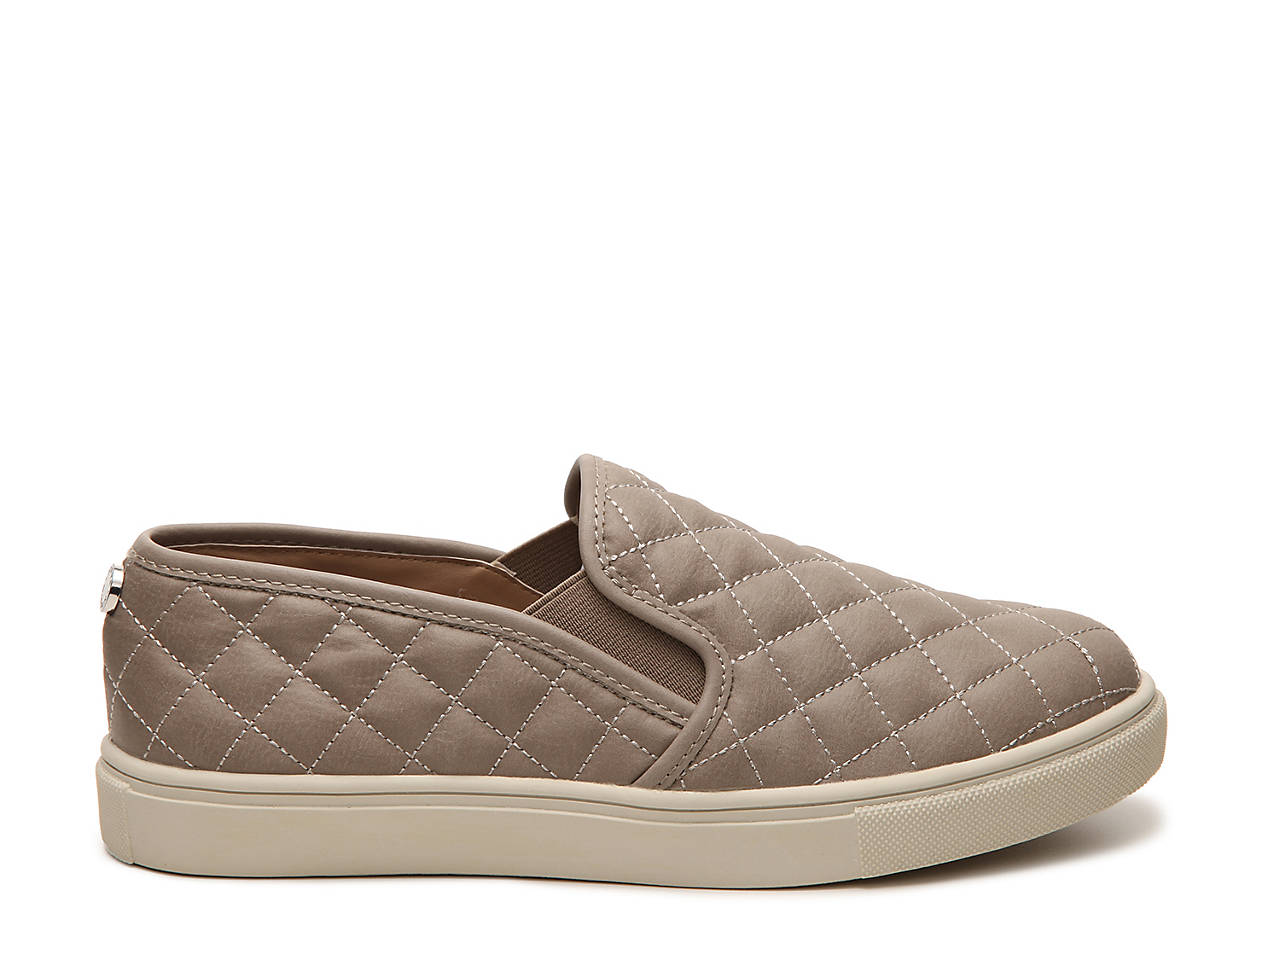 fd05156850 Steve Madden Ecentrcq Slip-On Sneaker Women s Shoes